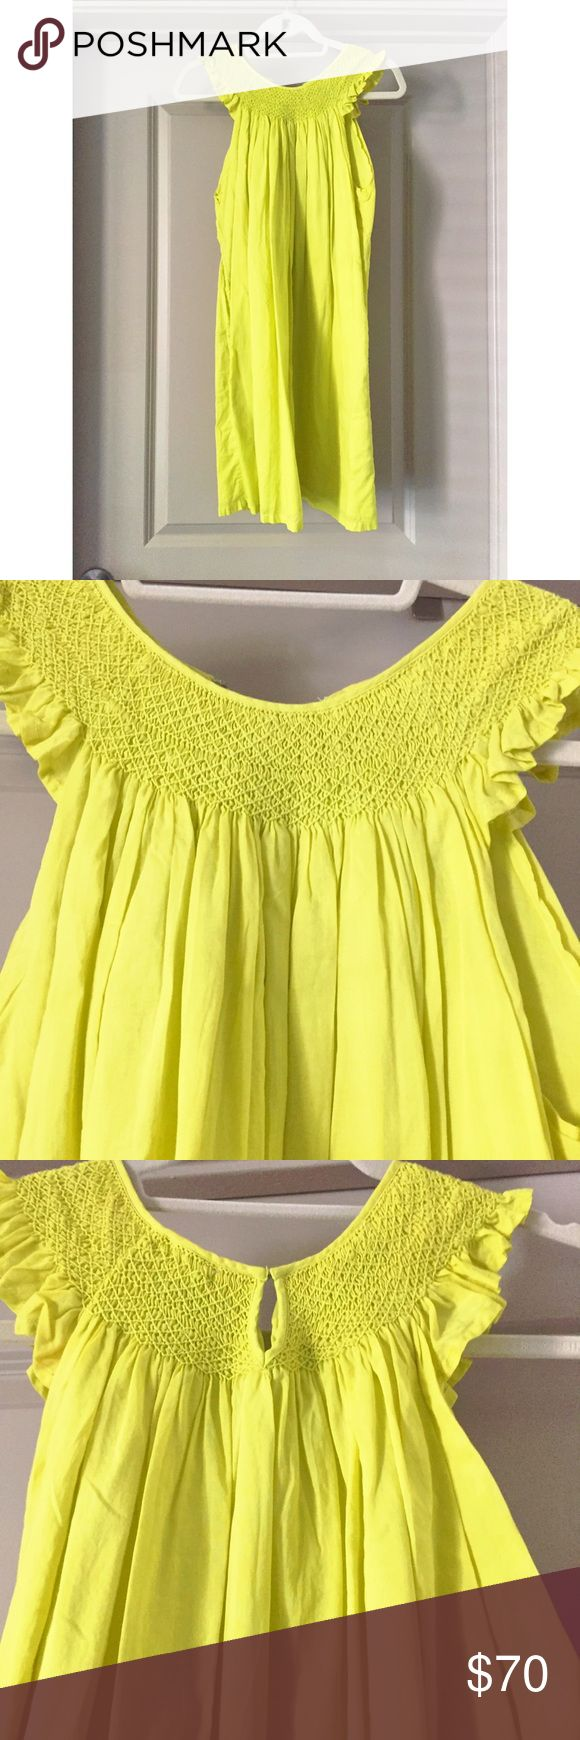 J. Crew Neon Green Dress Neon green dress from J. Crew. Only worn once! VERY loose and comfy! J. Crew Dresses